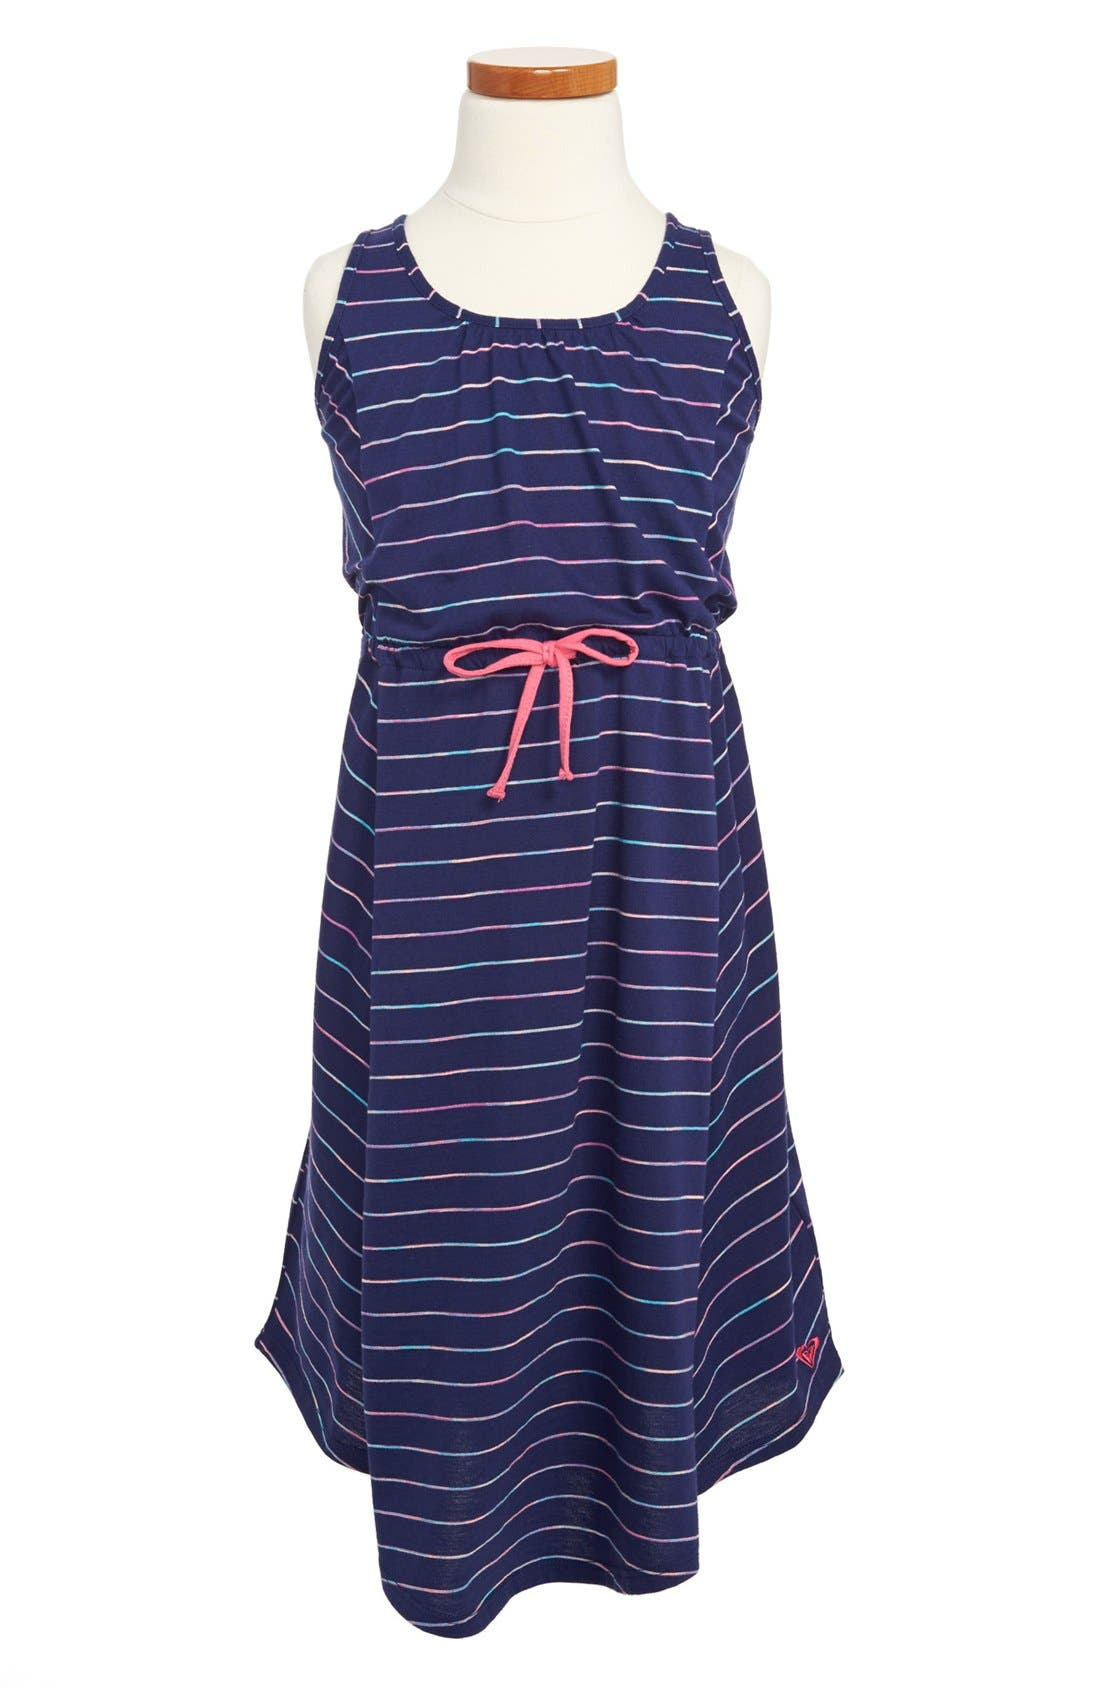 Alternate Image 1 Selected - Roxy 'Valley Spring' Dress (Big Girls)(Online Only)